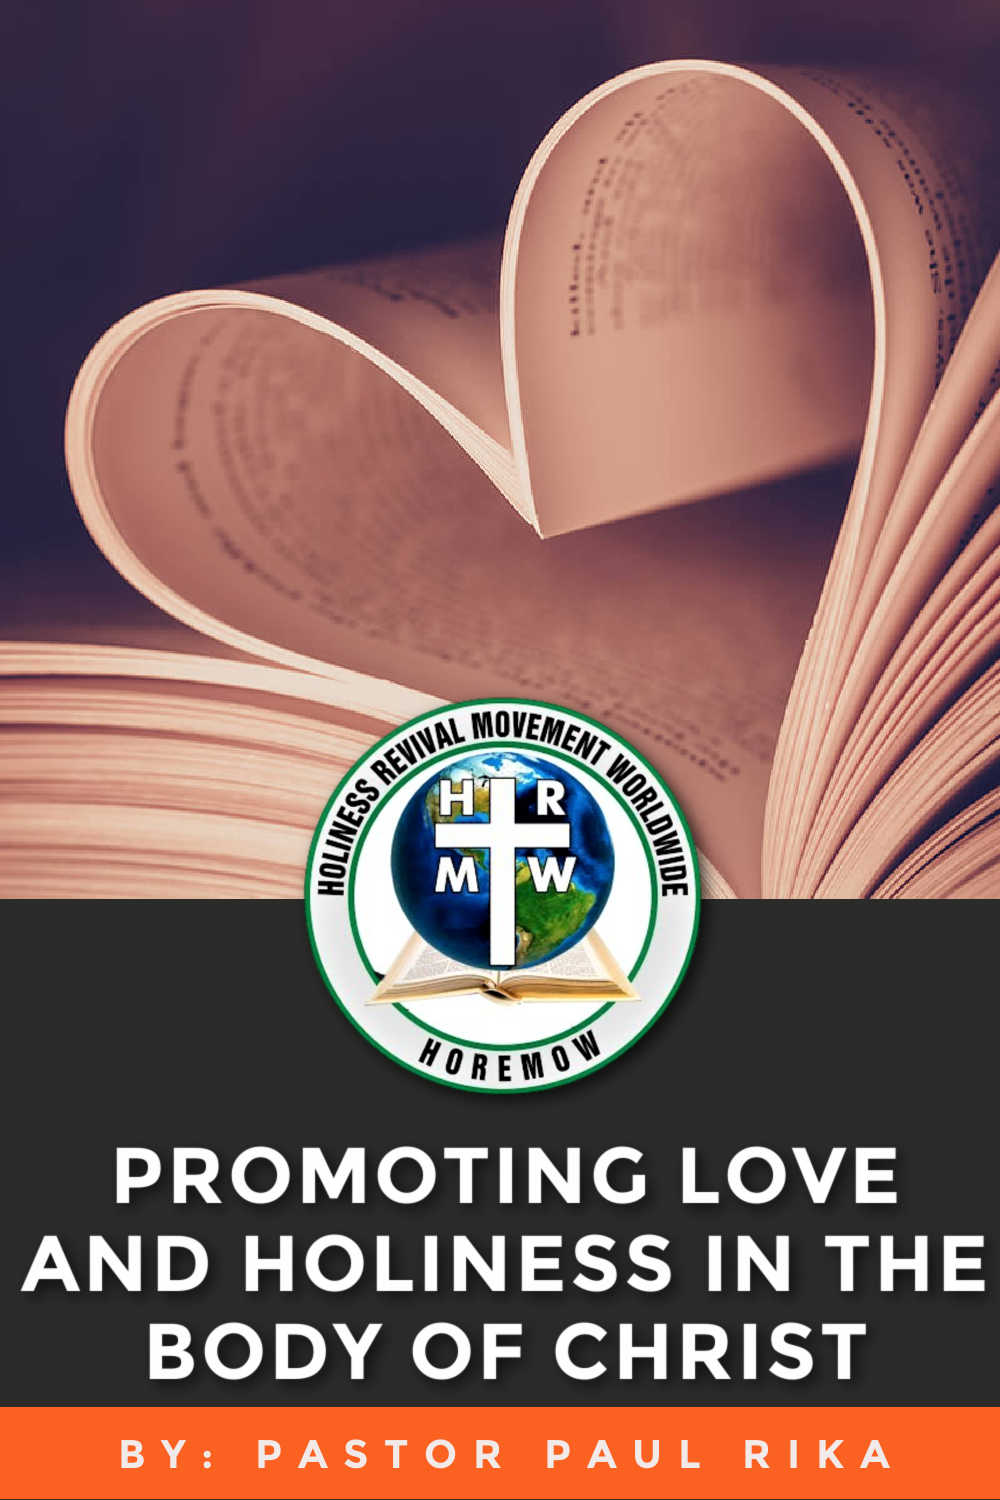 Promoting love and holiness in the Body of Christ